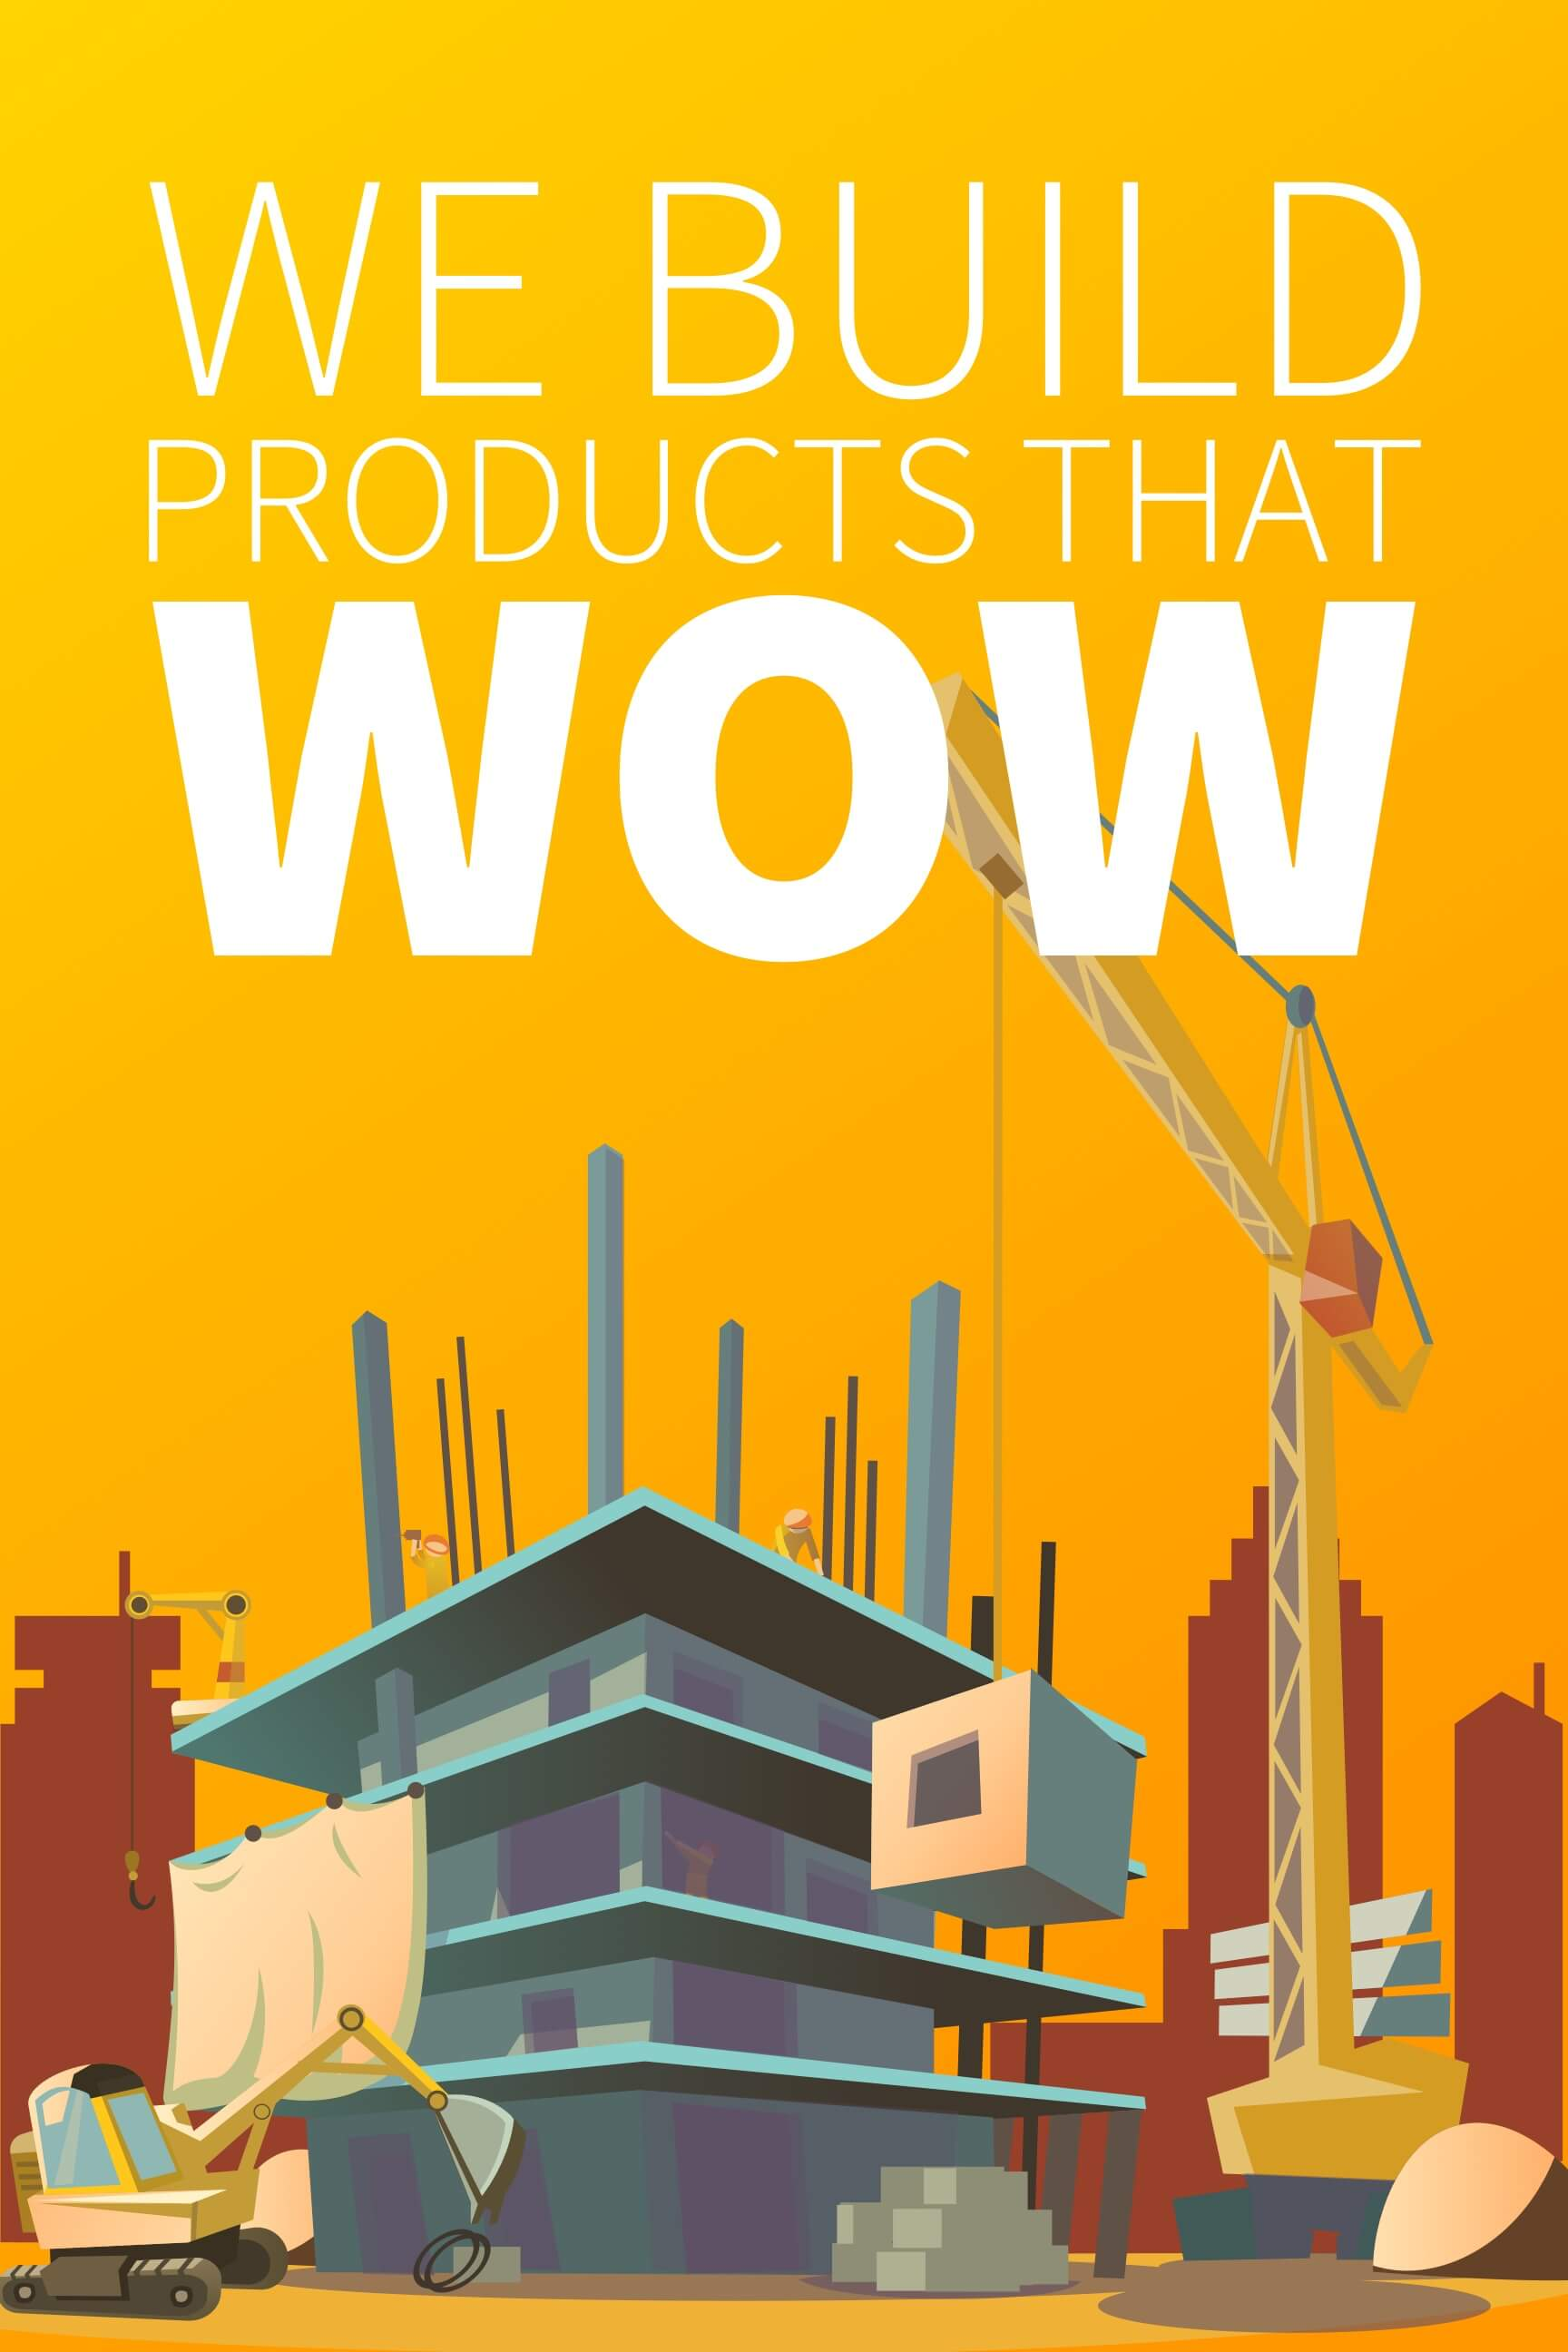 We build products that WOW